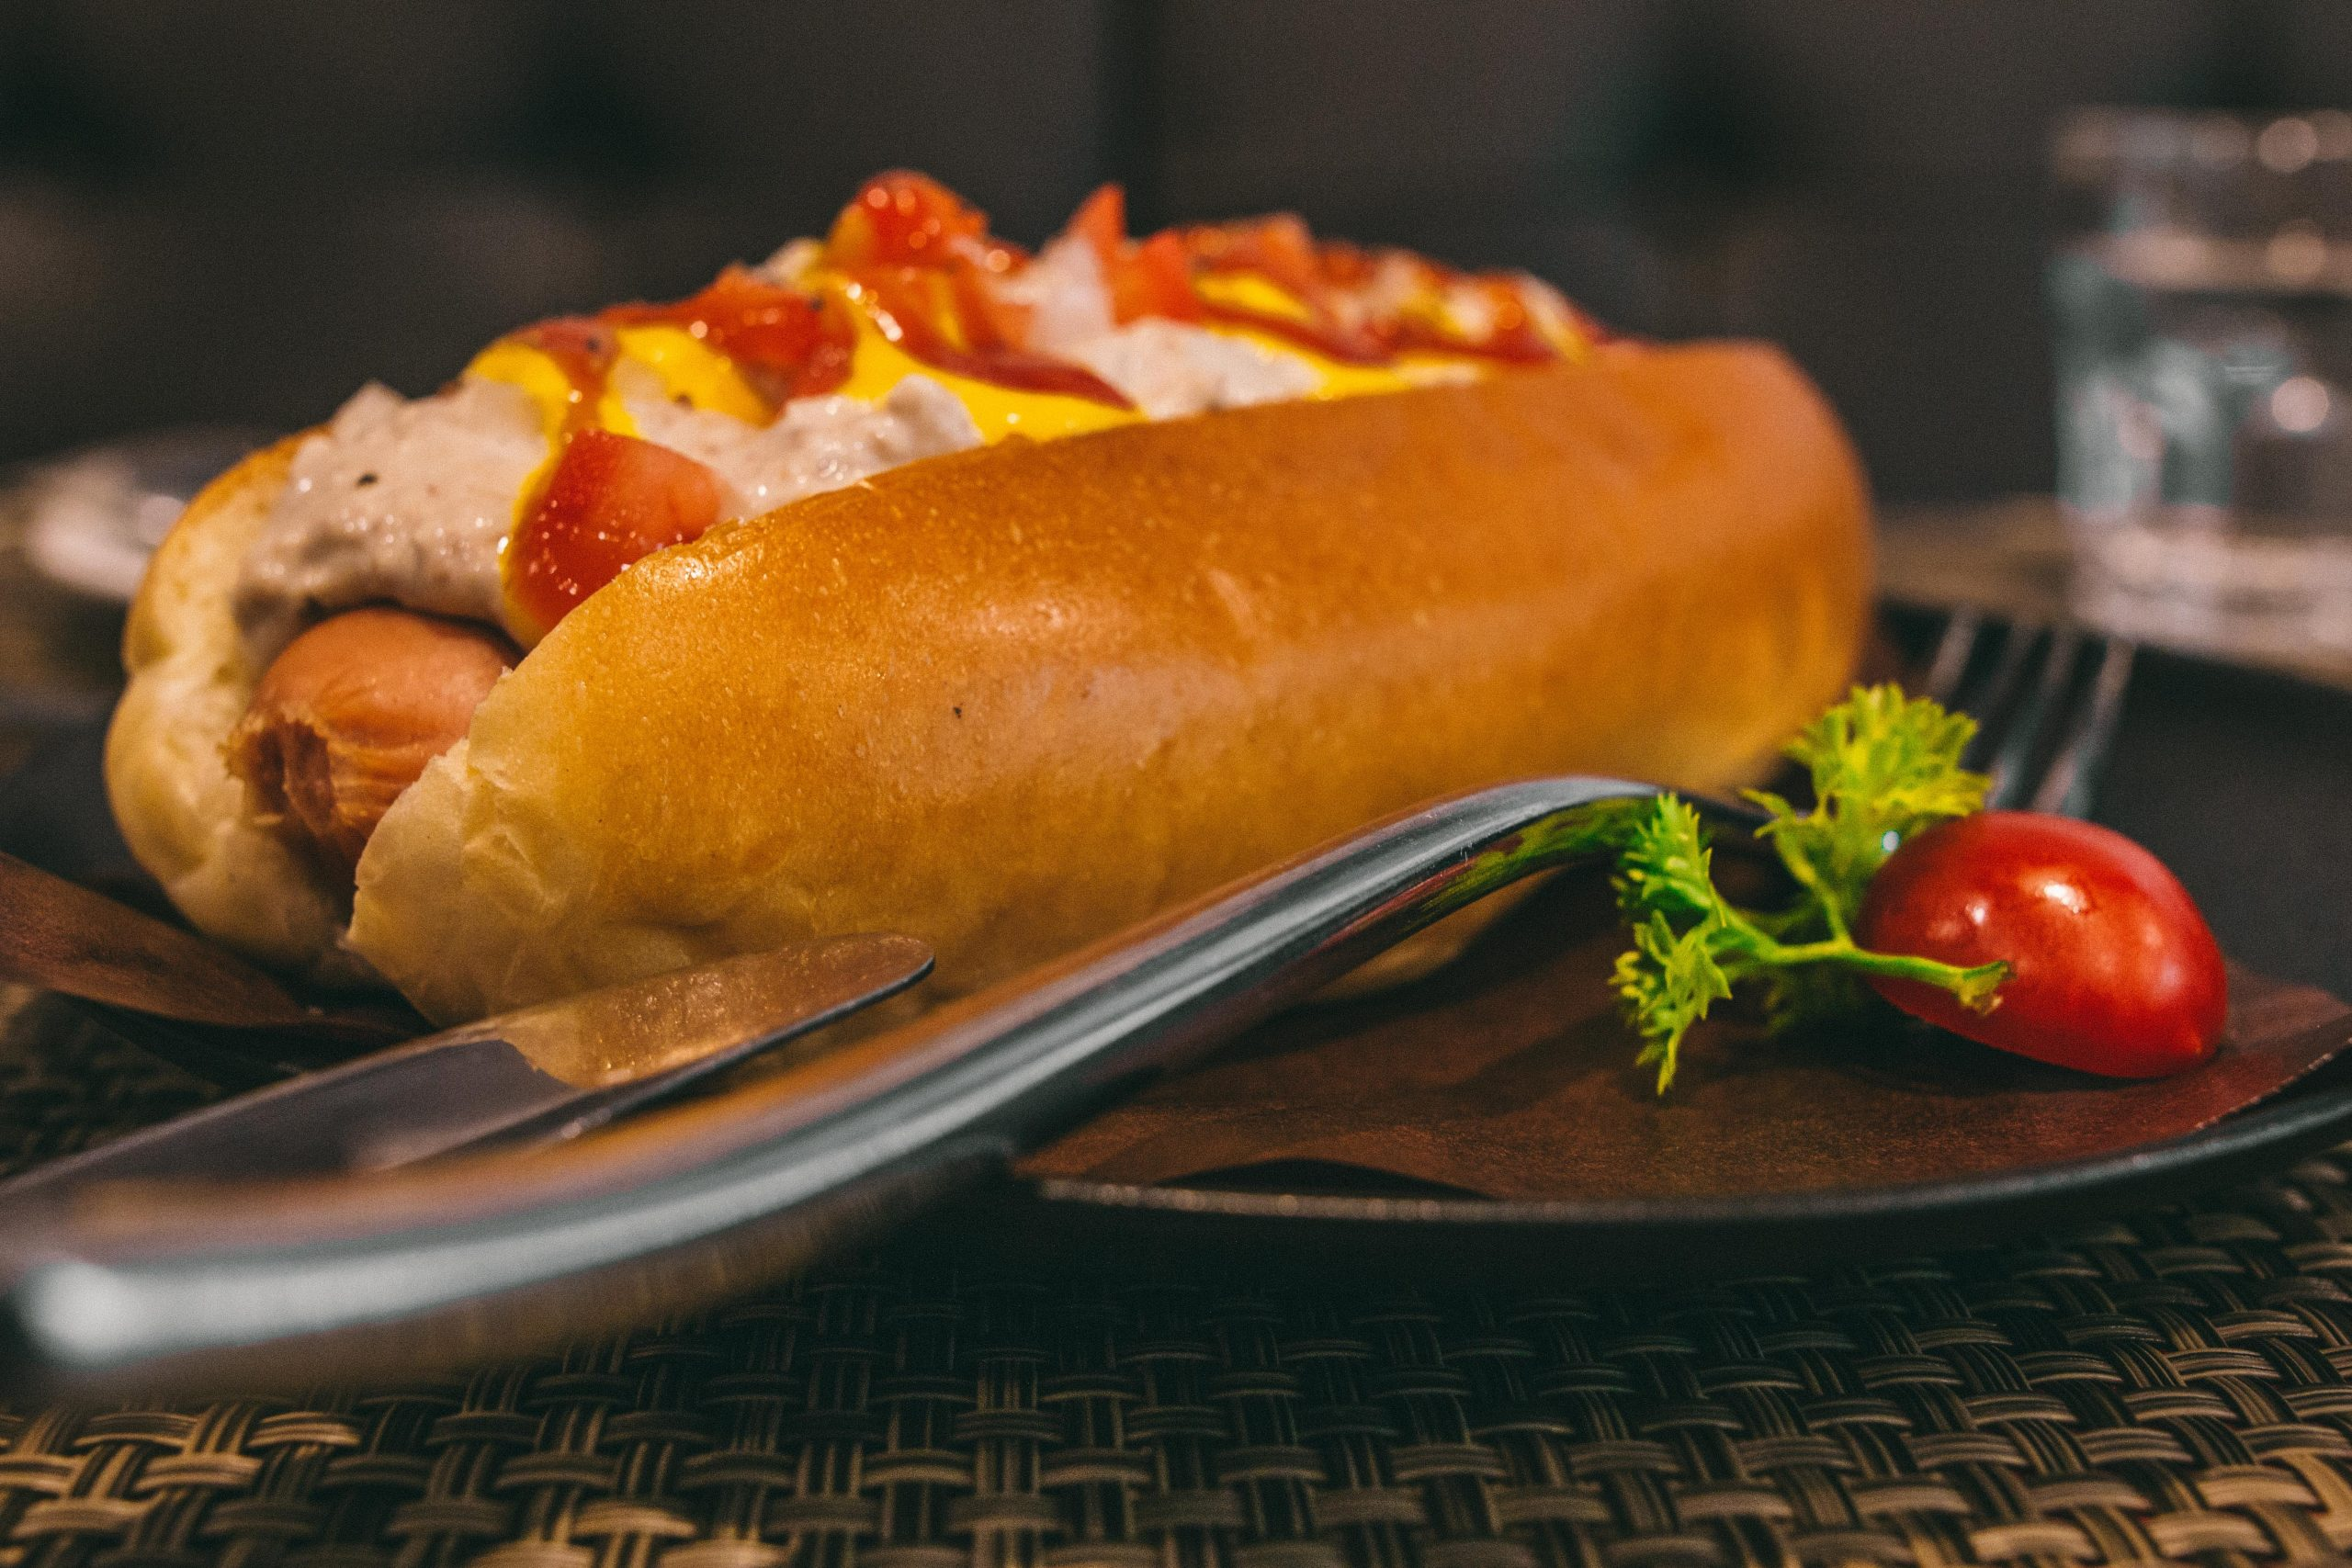 Hot dog ricetta originale americana